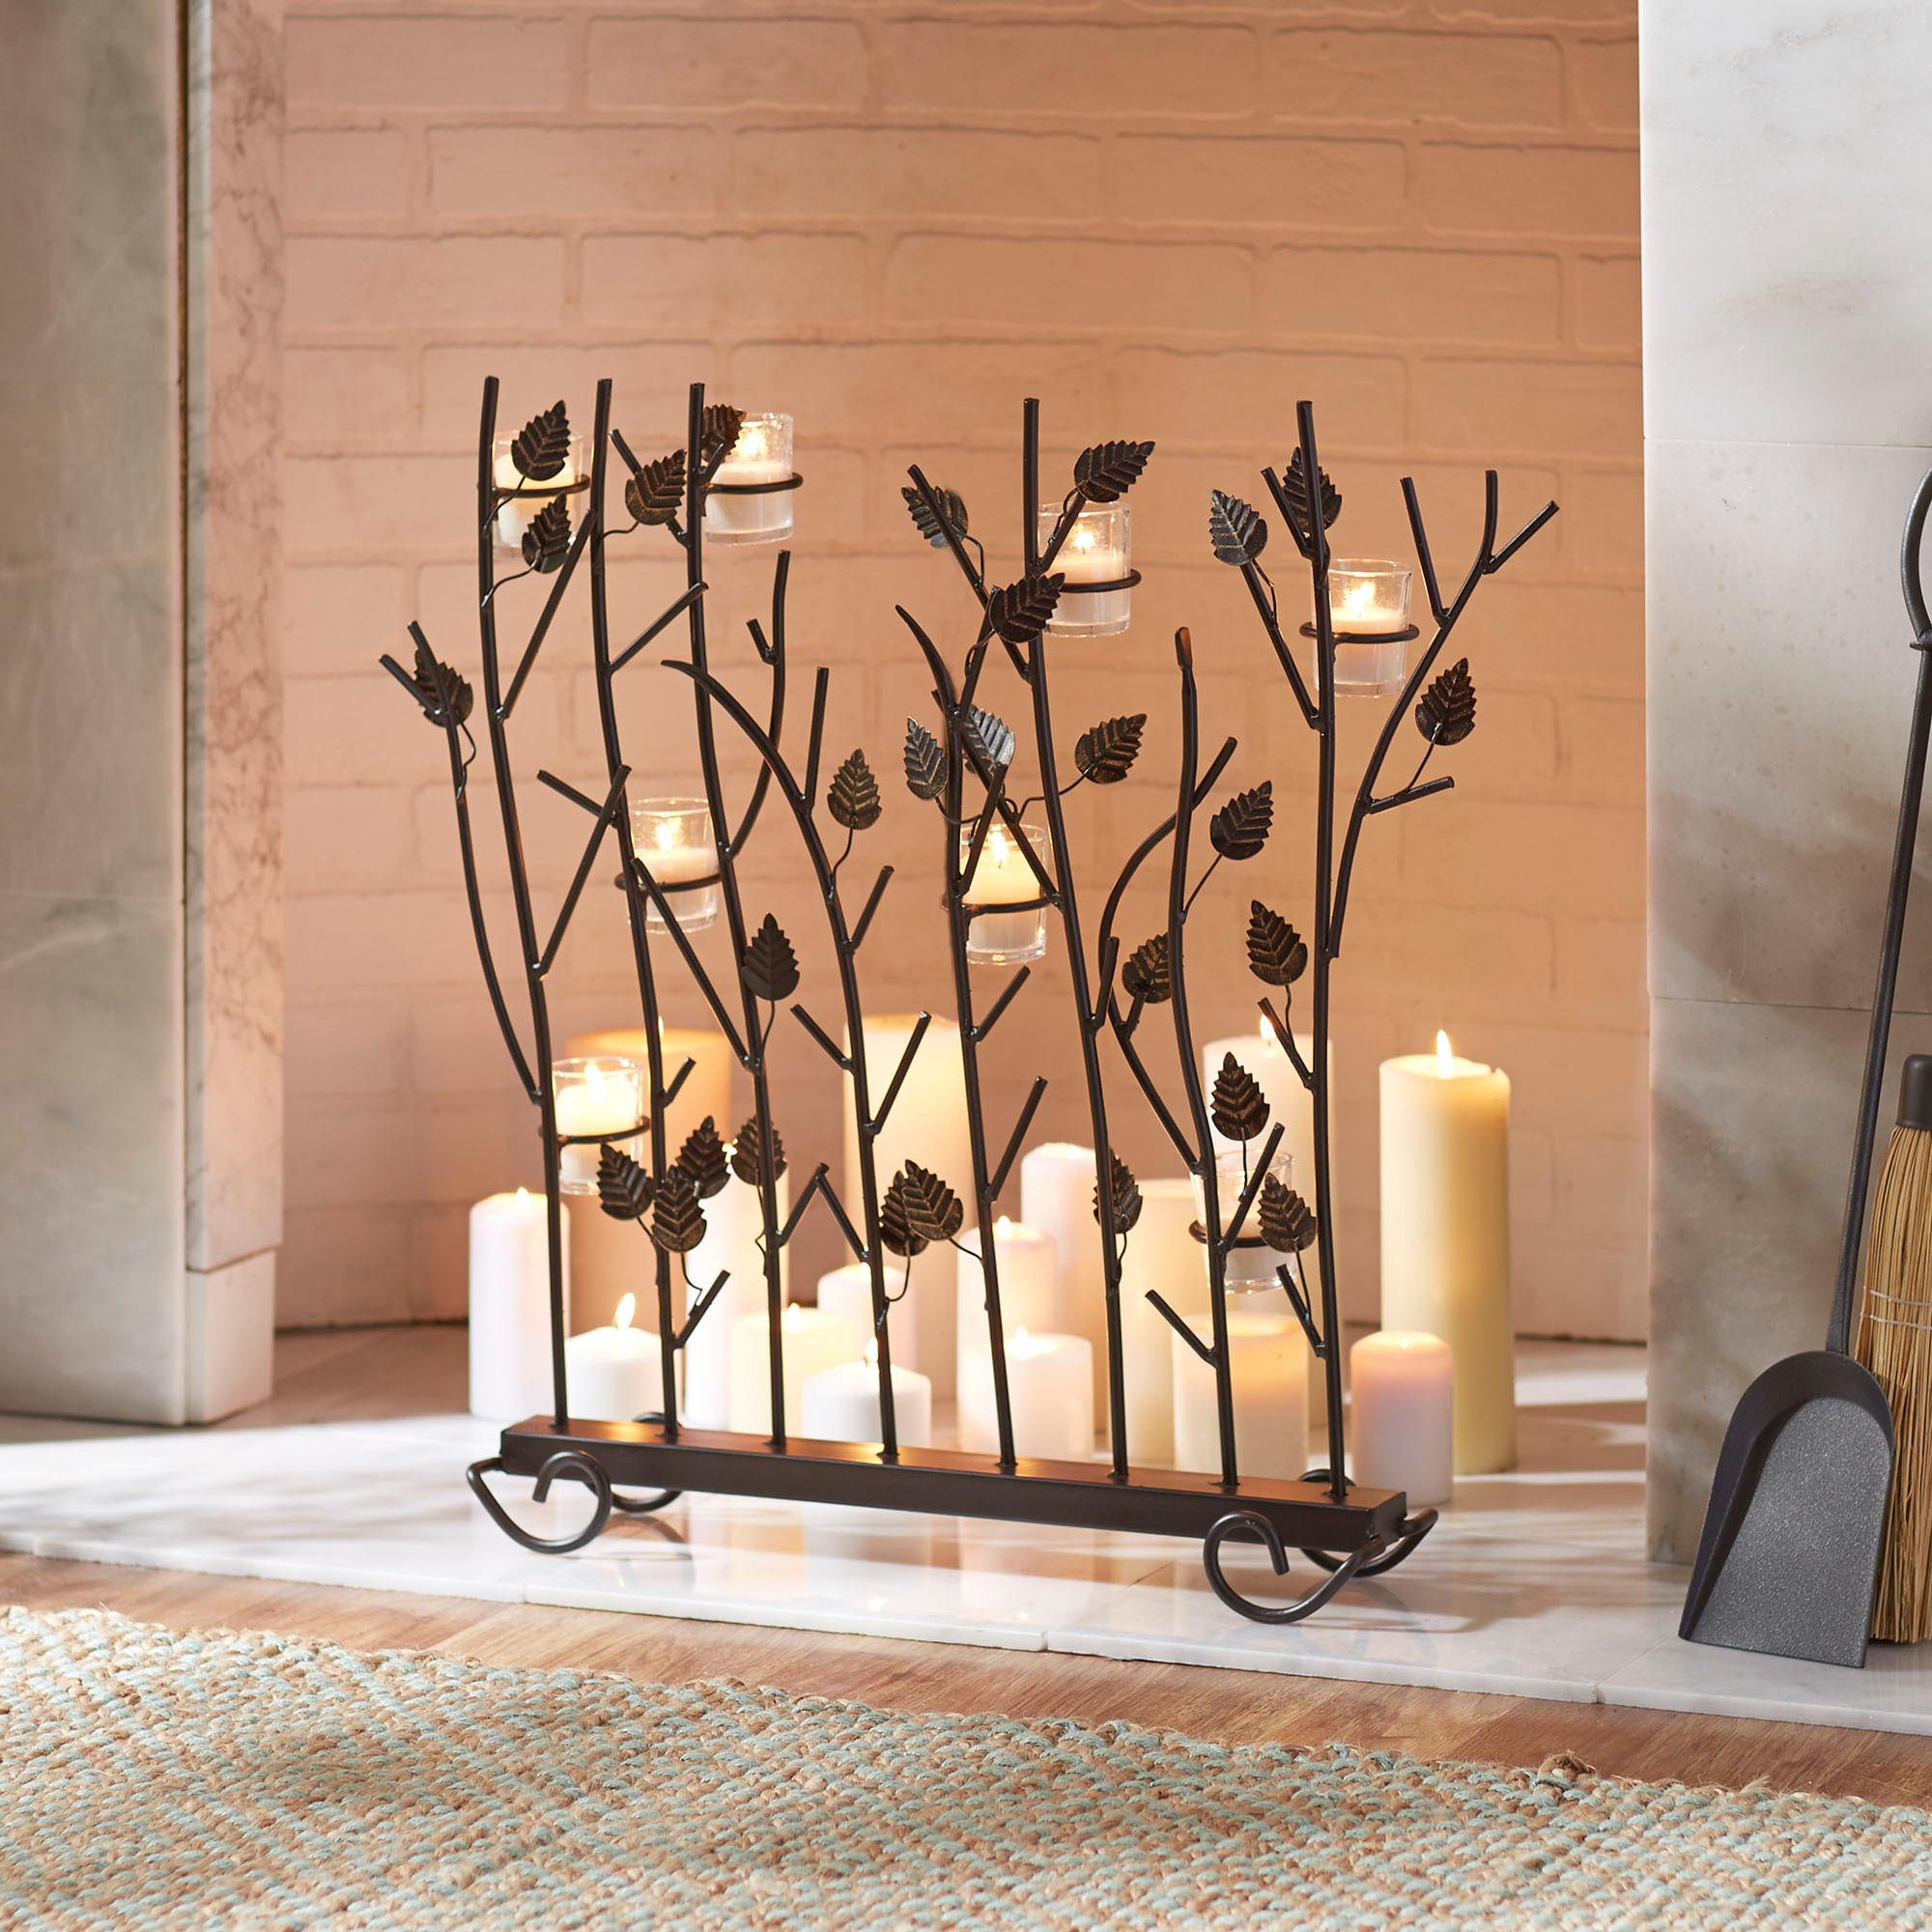 wrought iron fireplace candle holder pictures to pin on pinterest